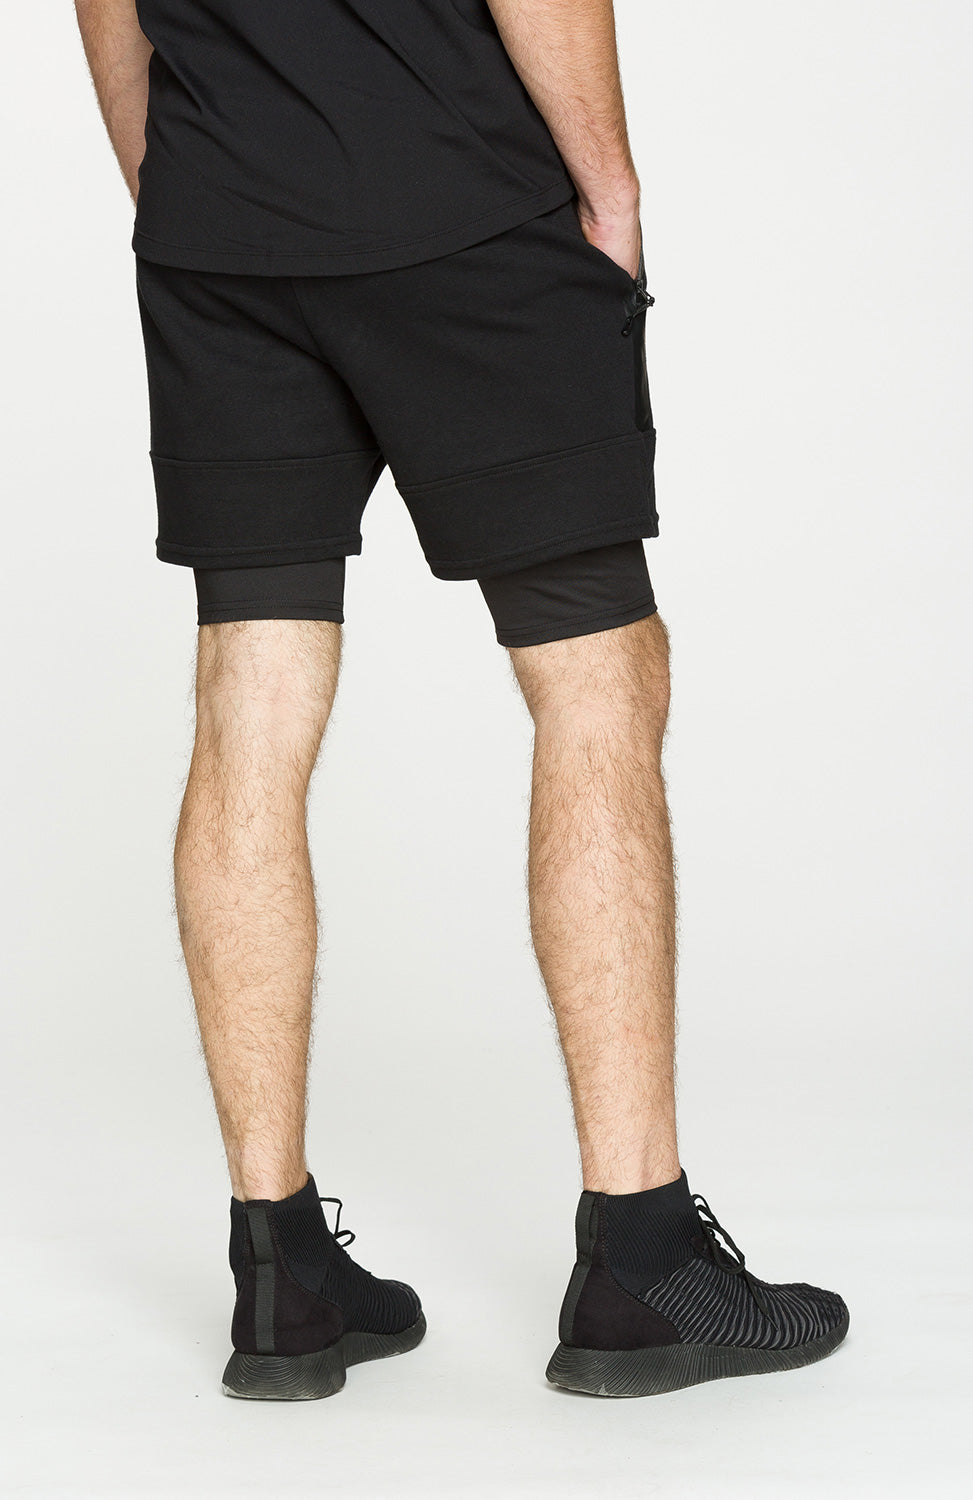 Cohesion Short